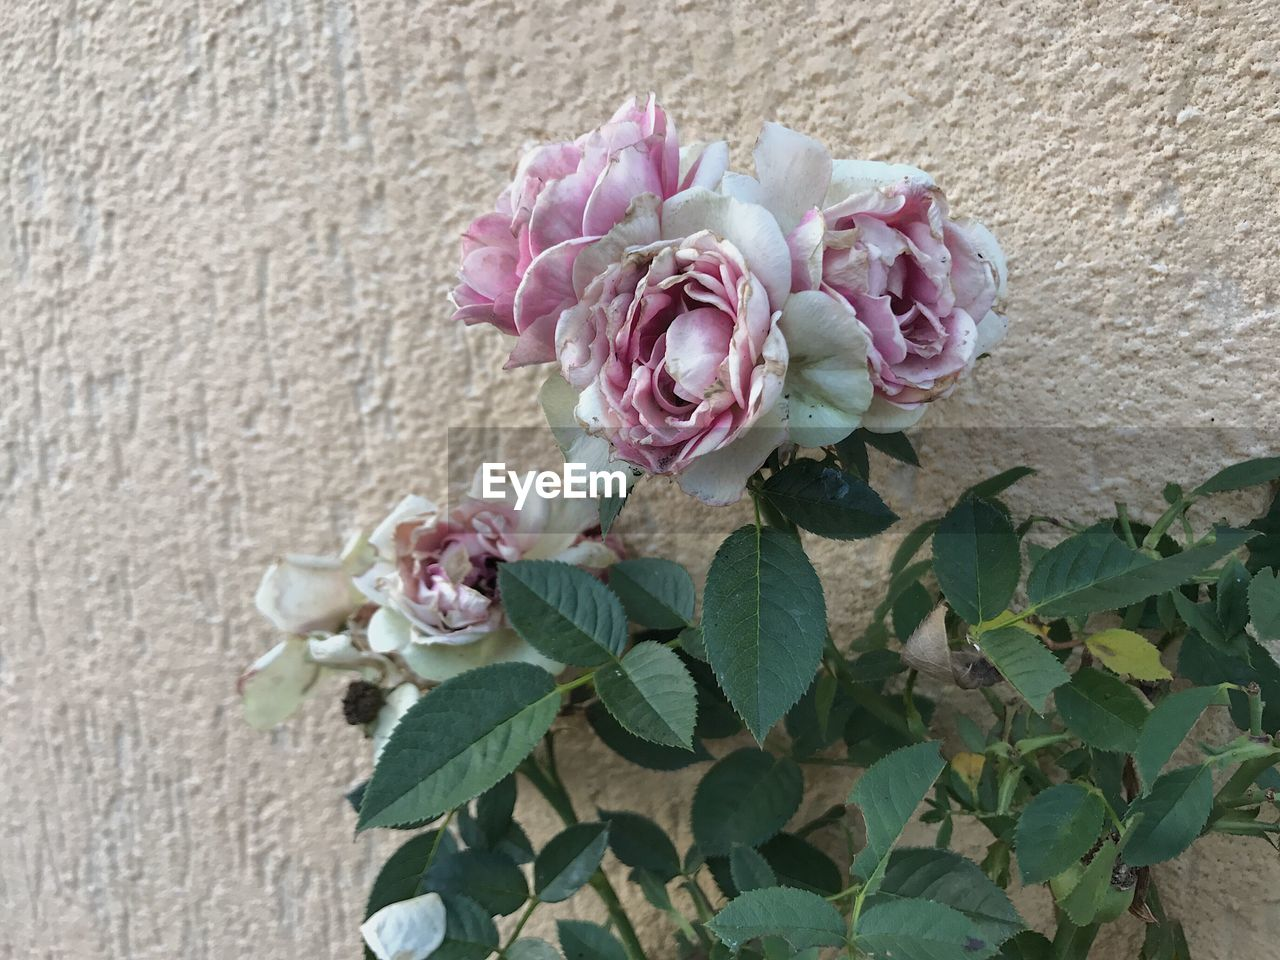 flower, fragility, pink color, petal, freshness, beauty in nature, plant, nature, no people, leaf, close-up, growth, outdoors, blooming, flower head, day, architecture